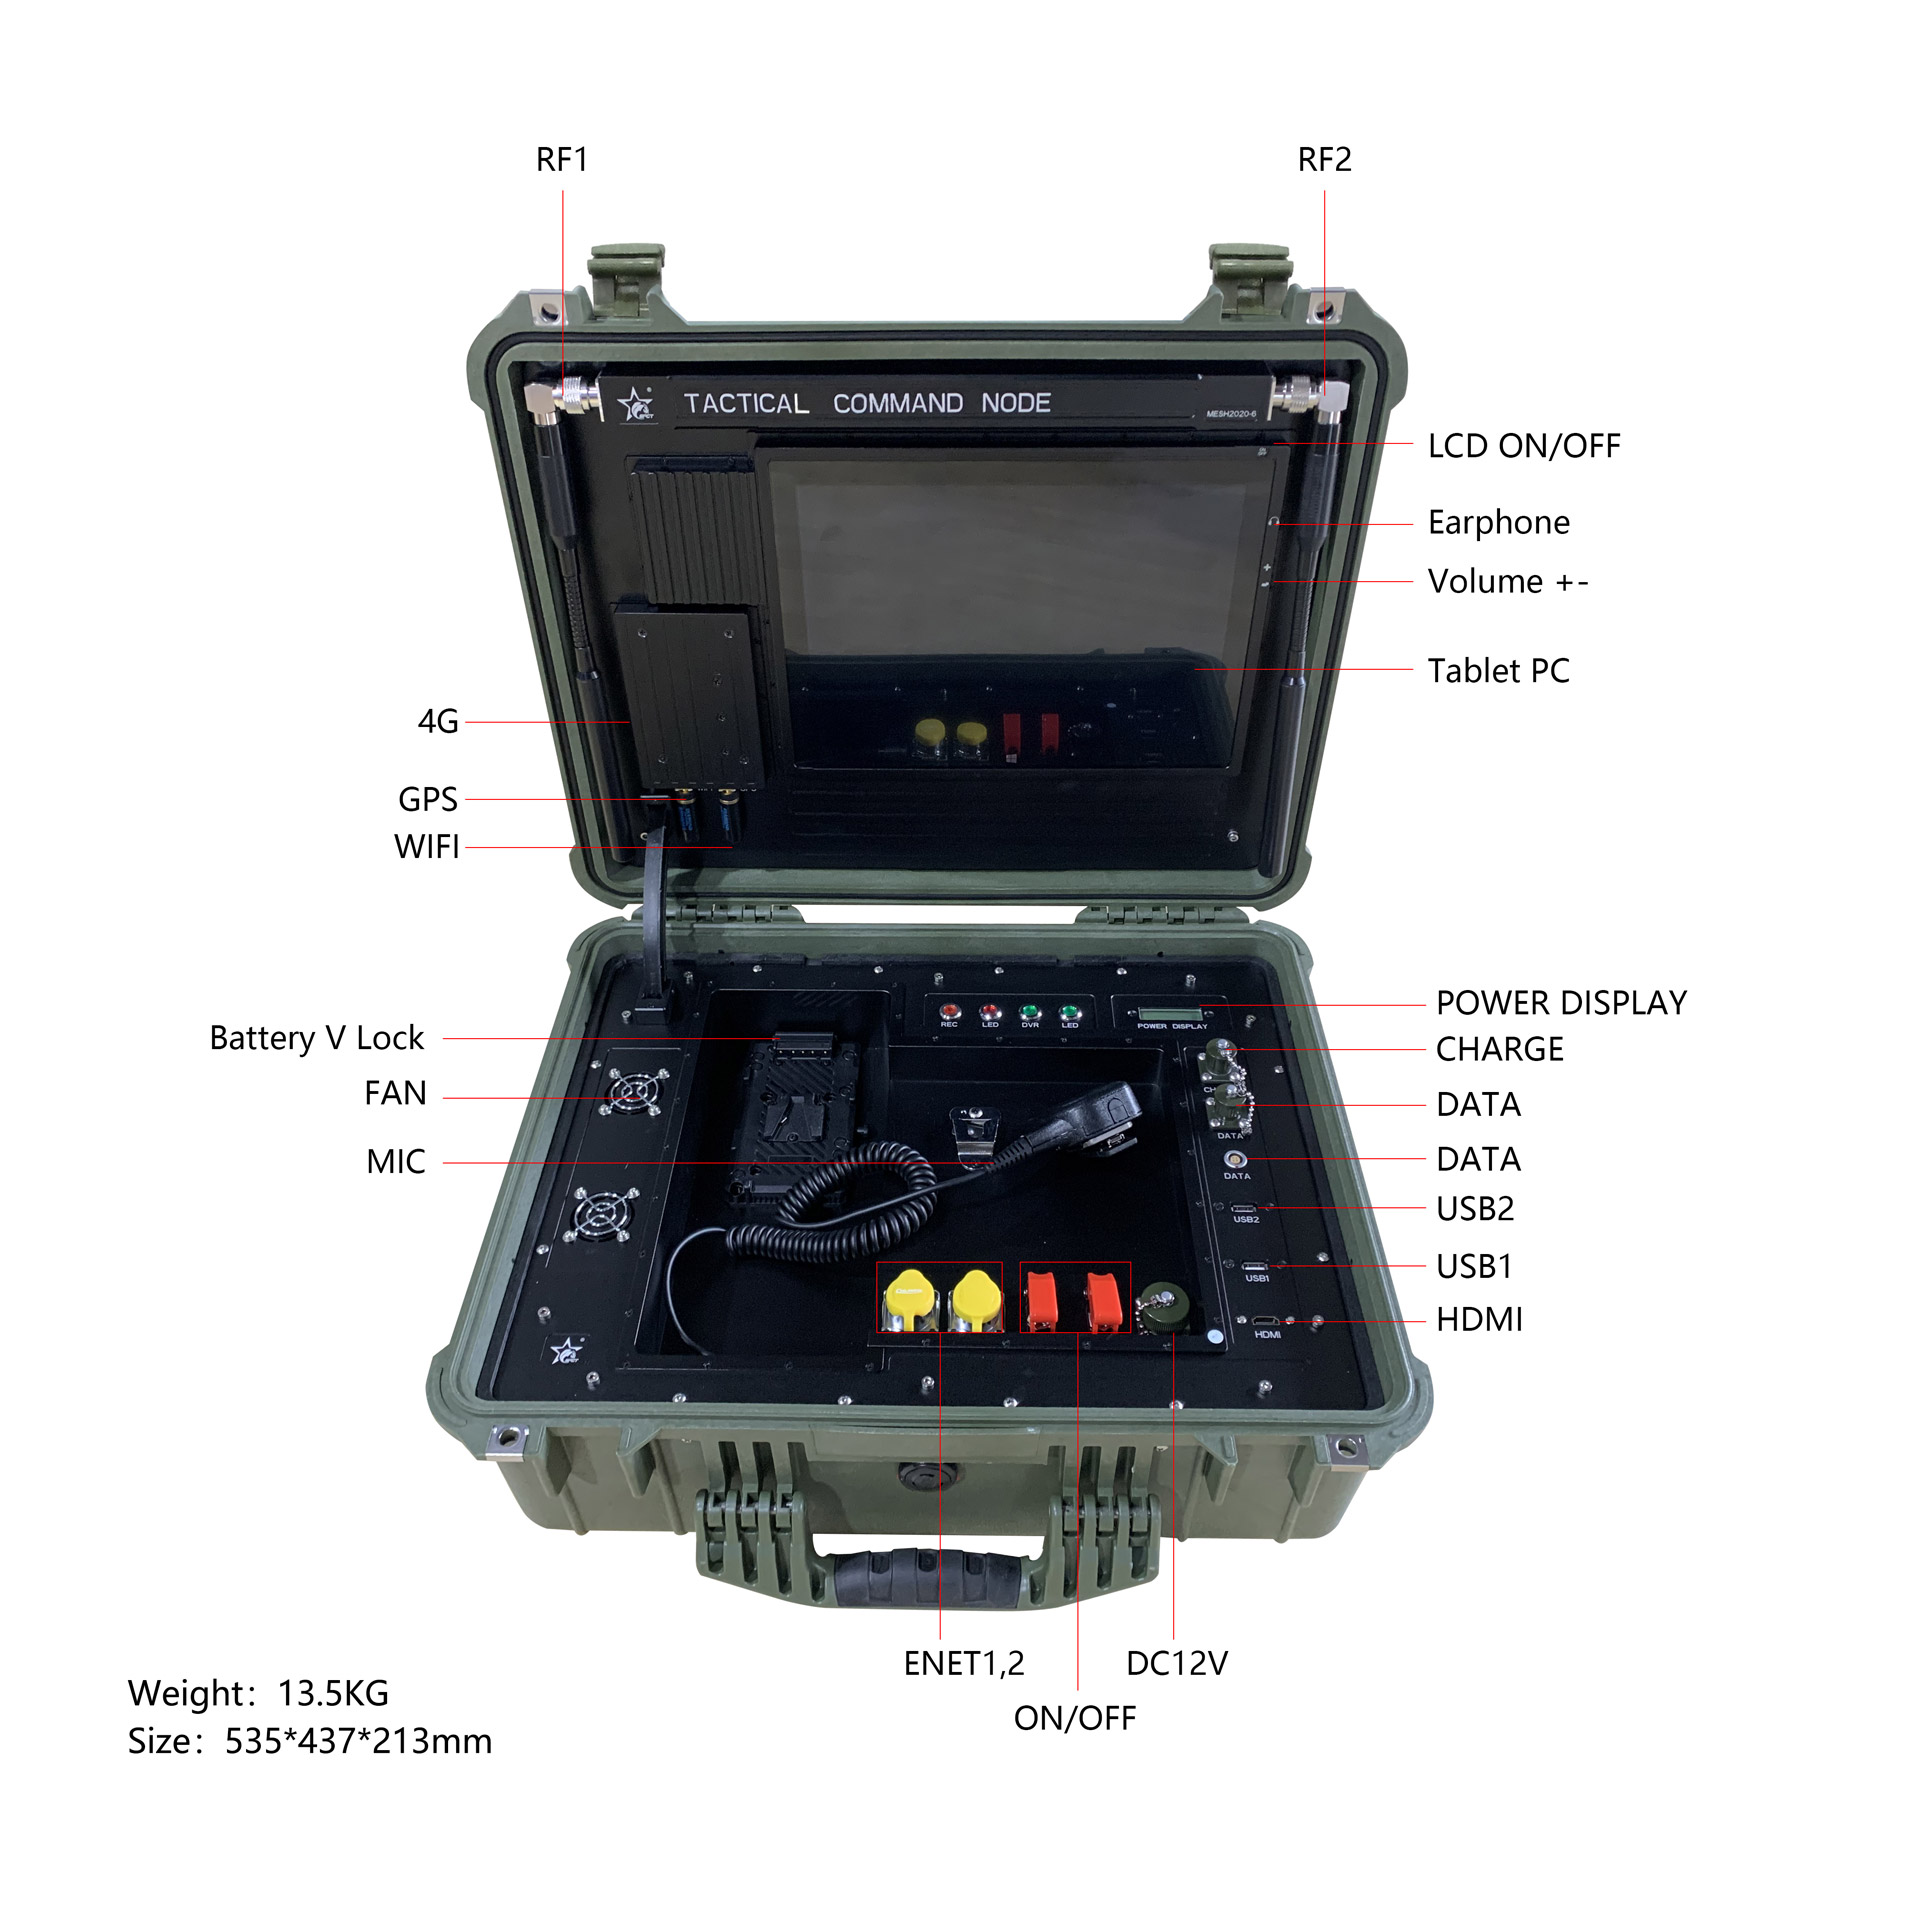 Light weight transceiver cofdm ip mesh command and control center network equipment for drone